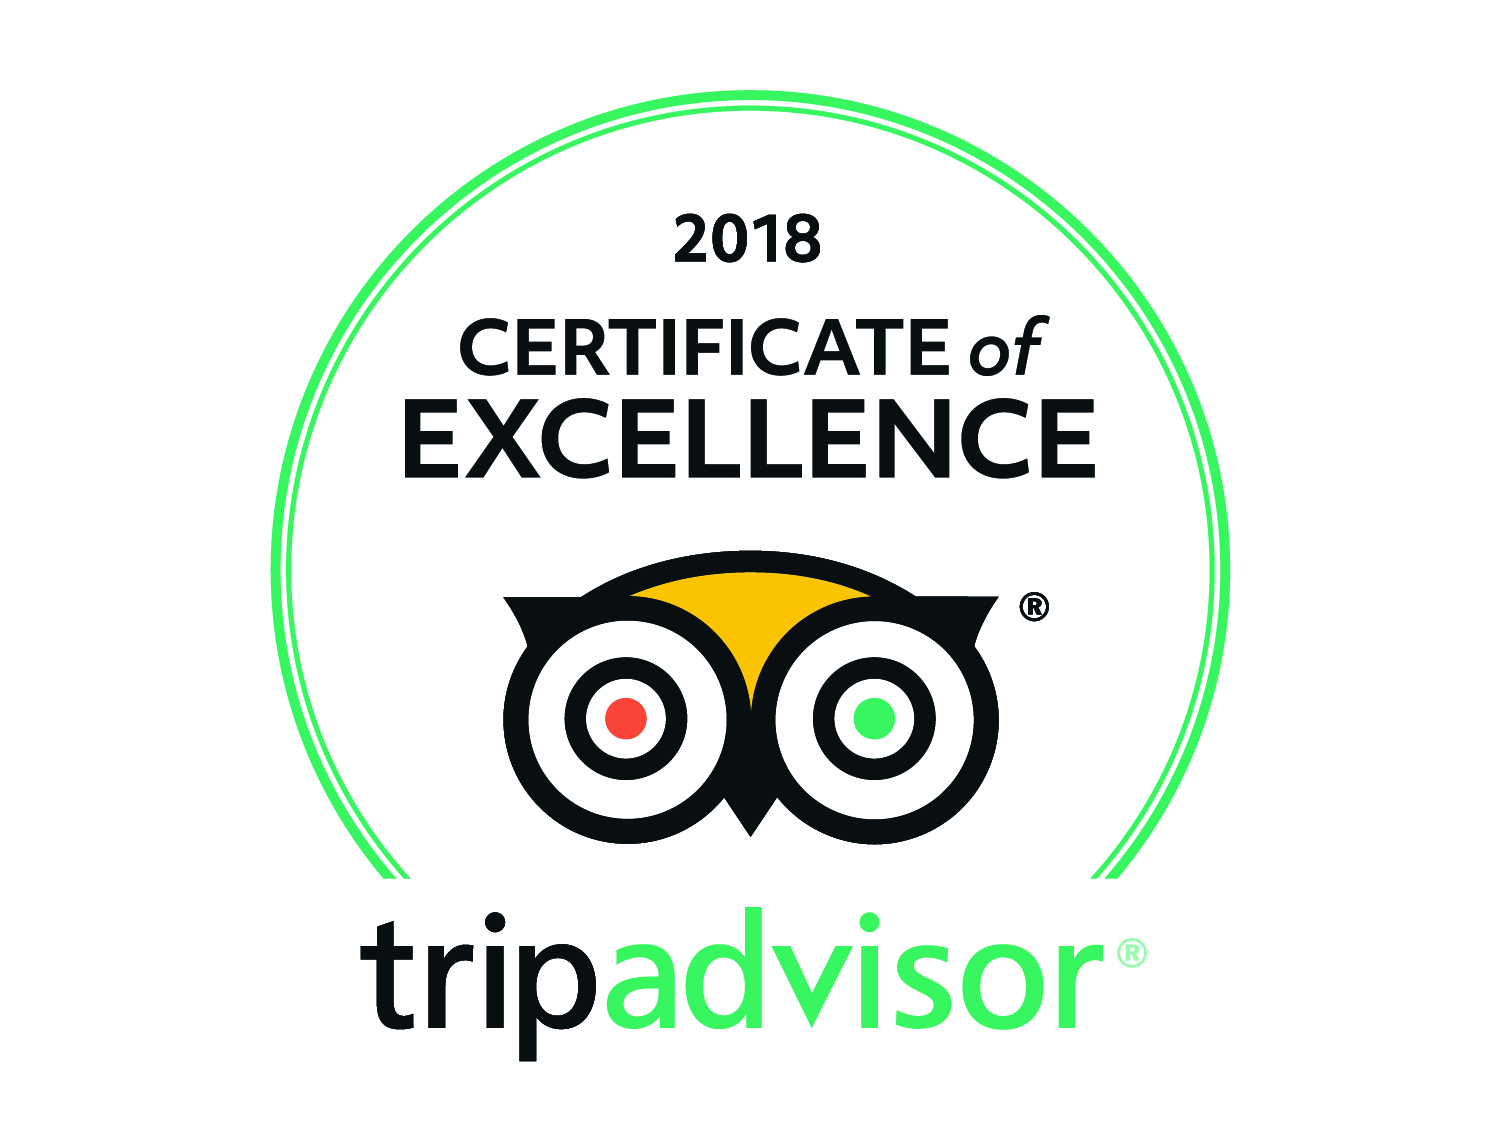 We are a tripadvisor centre of excellence!